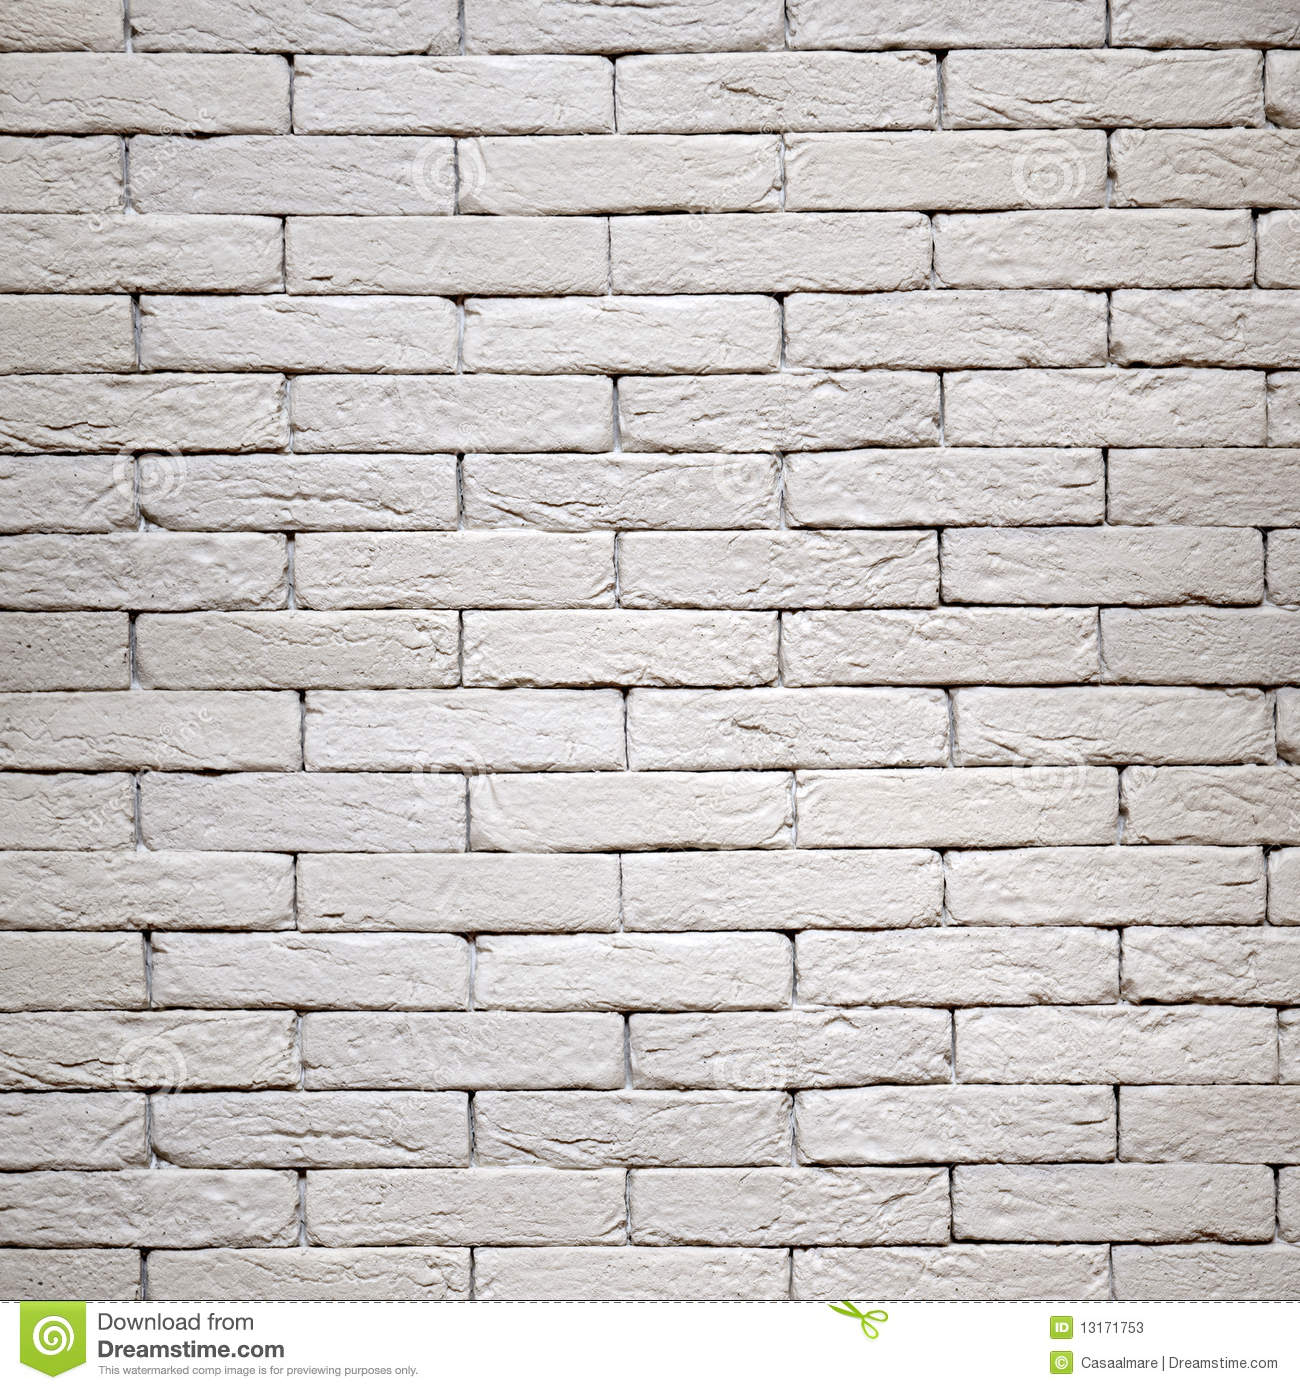 White brick wall texture. relief structure.